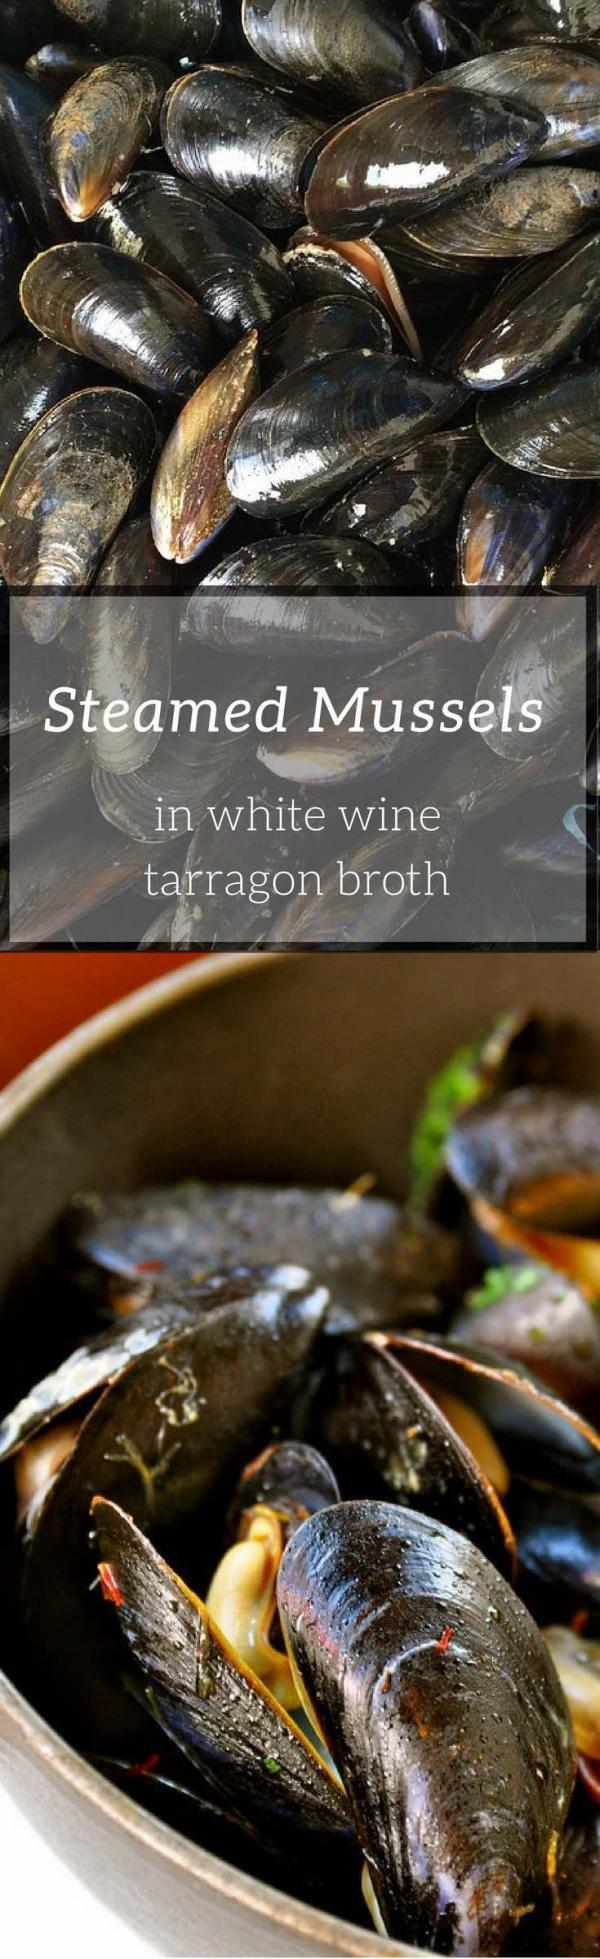 Steamed Mussels in White Wine Tarragon Broth--simple yet impressive